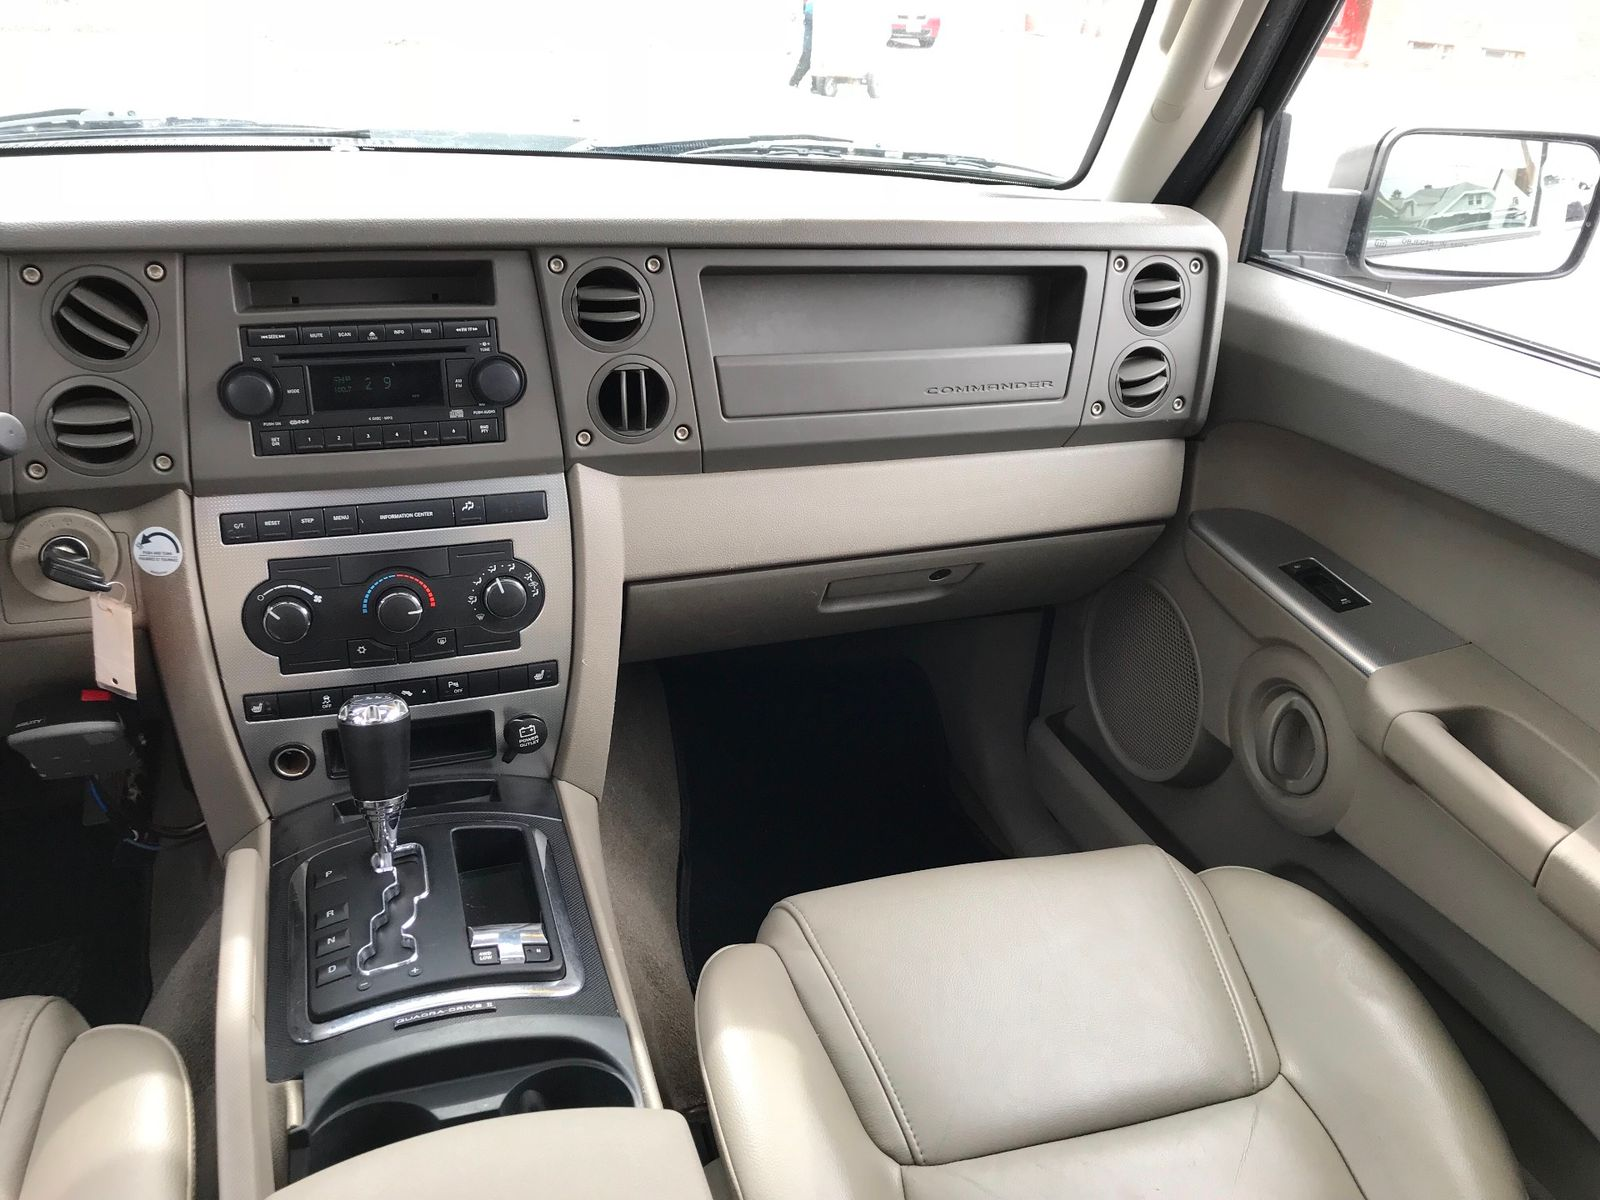 2006 jeep commander interior 2018 2019 new car reviews by at 06 Jeep  Commander Fuse Box